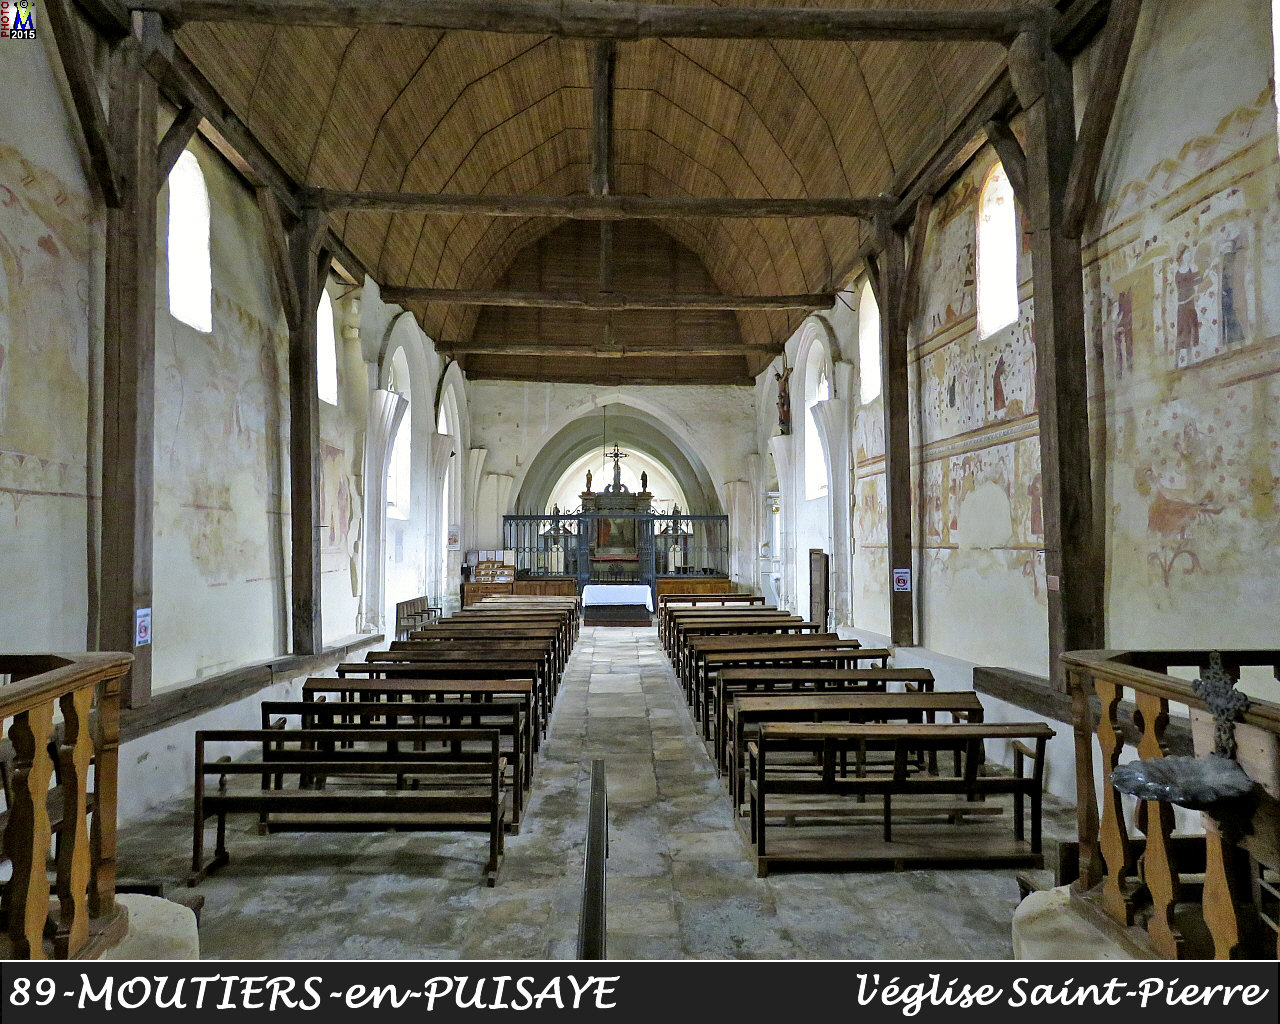 89MOUTIERS-PUISAYE_eglise_200.jpg